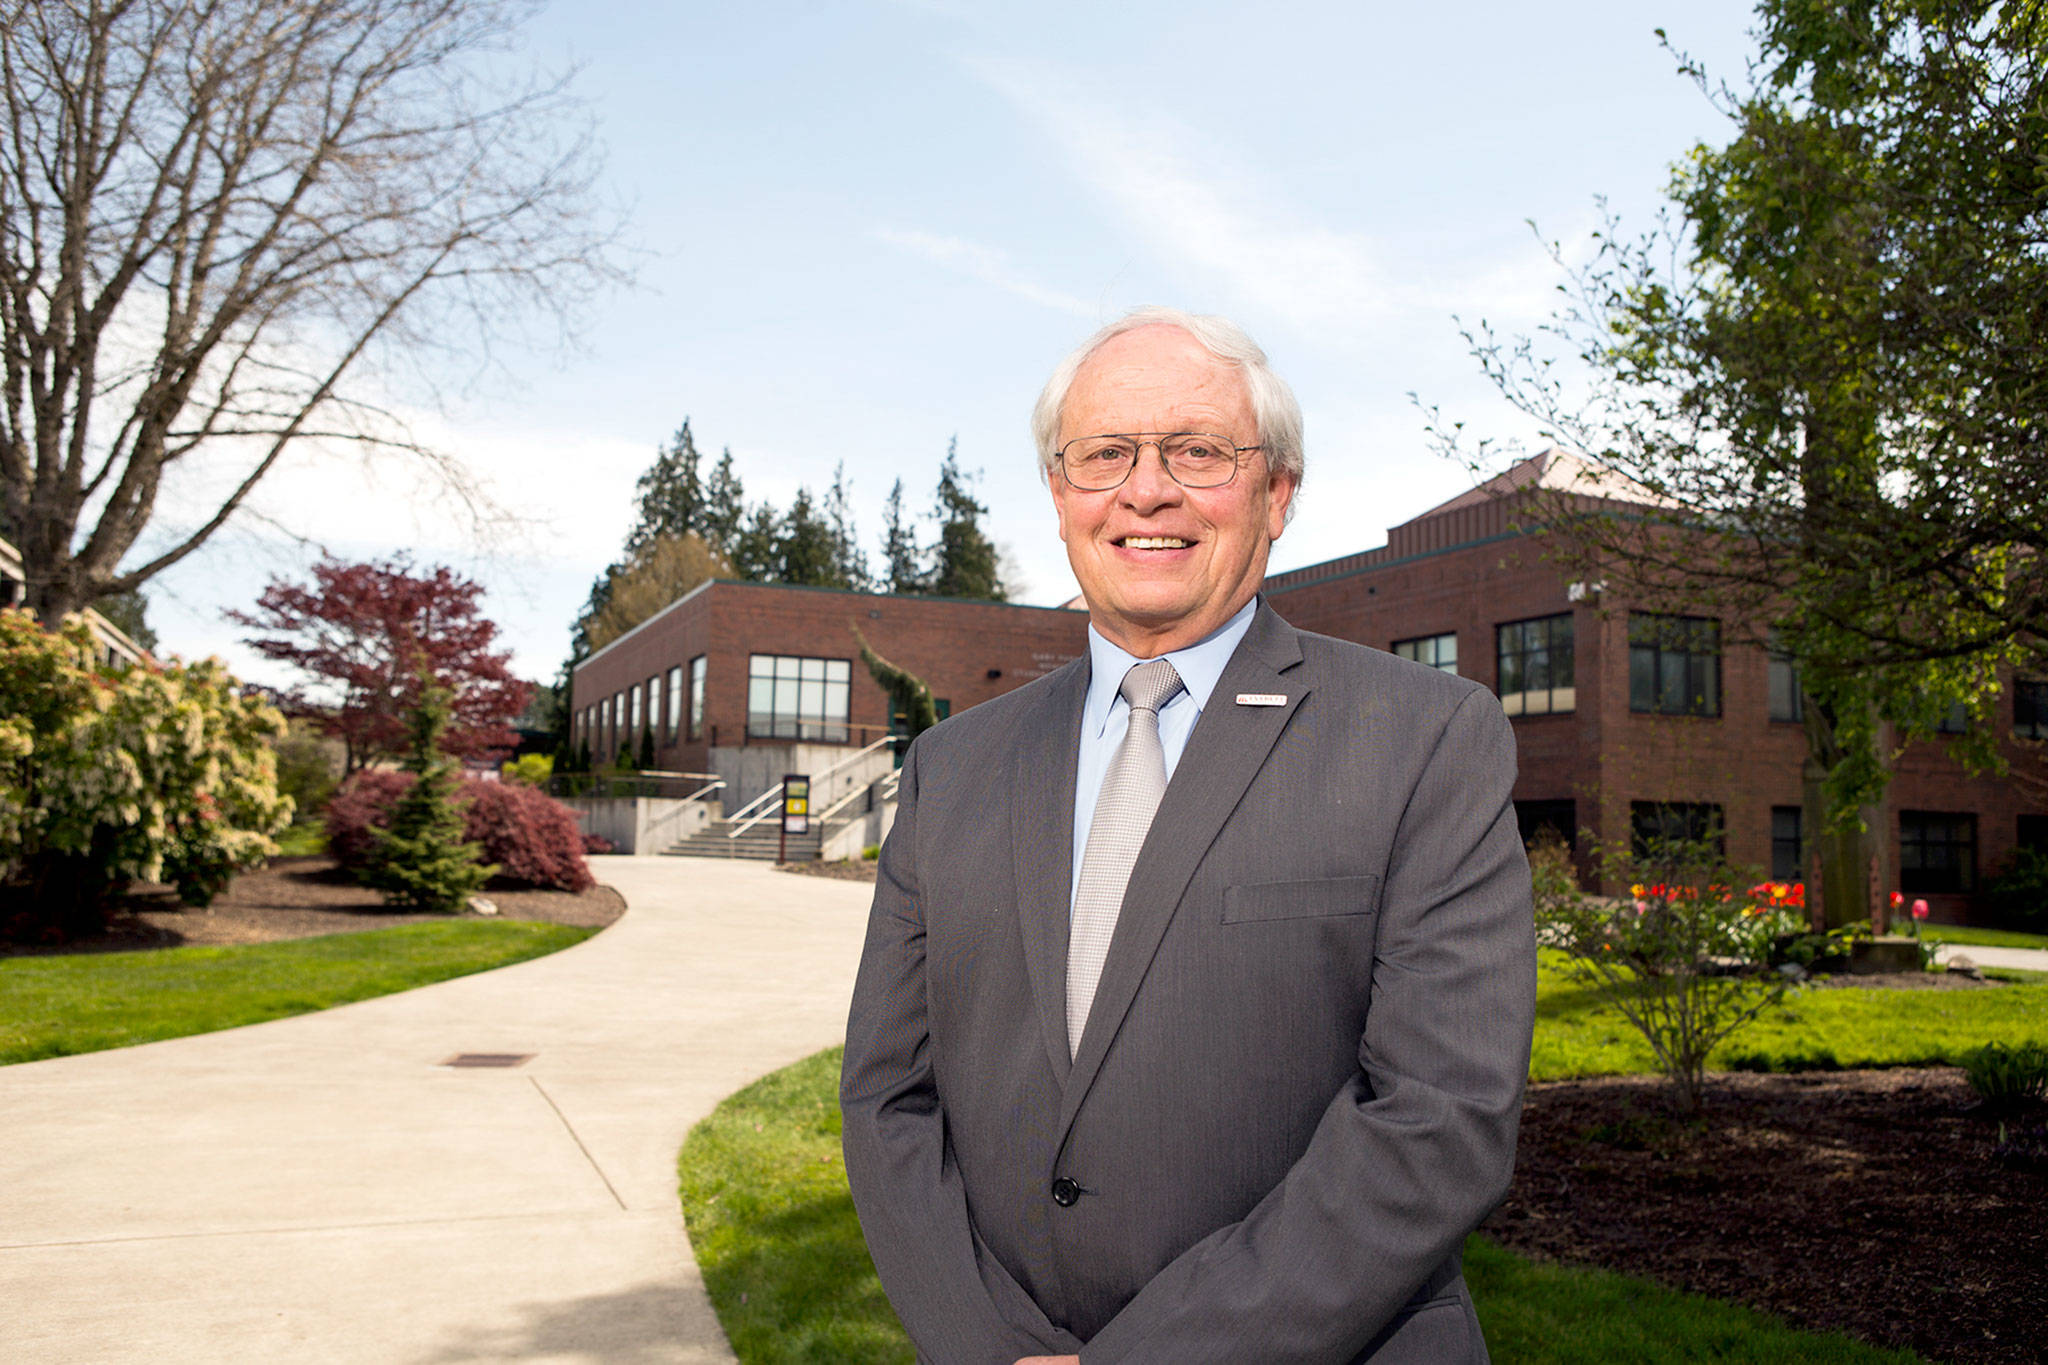 Former Everett Community College President David Beyer has received the Pacific Region CEO award from the Association of Community College Trustees. He was president of EvCC for 13 years before retiring in June. (Andy Bronson / Herald file)